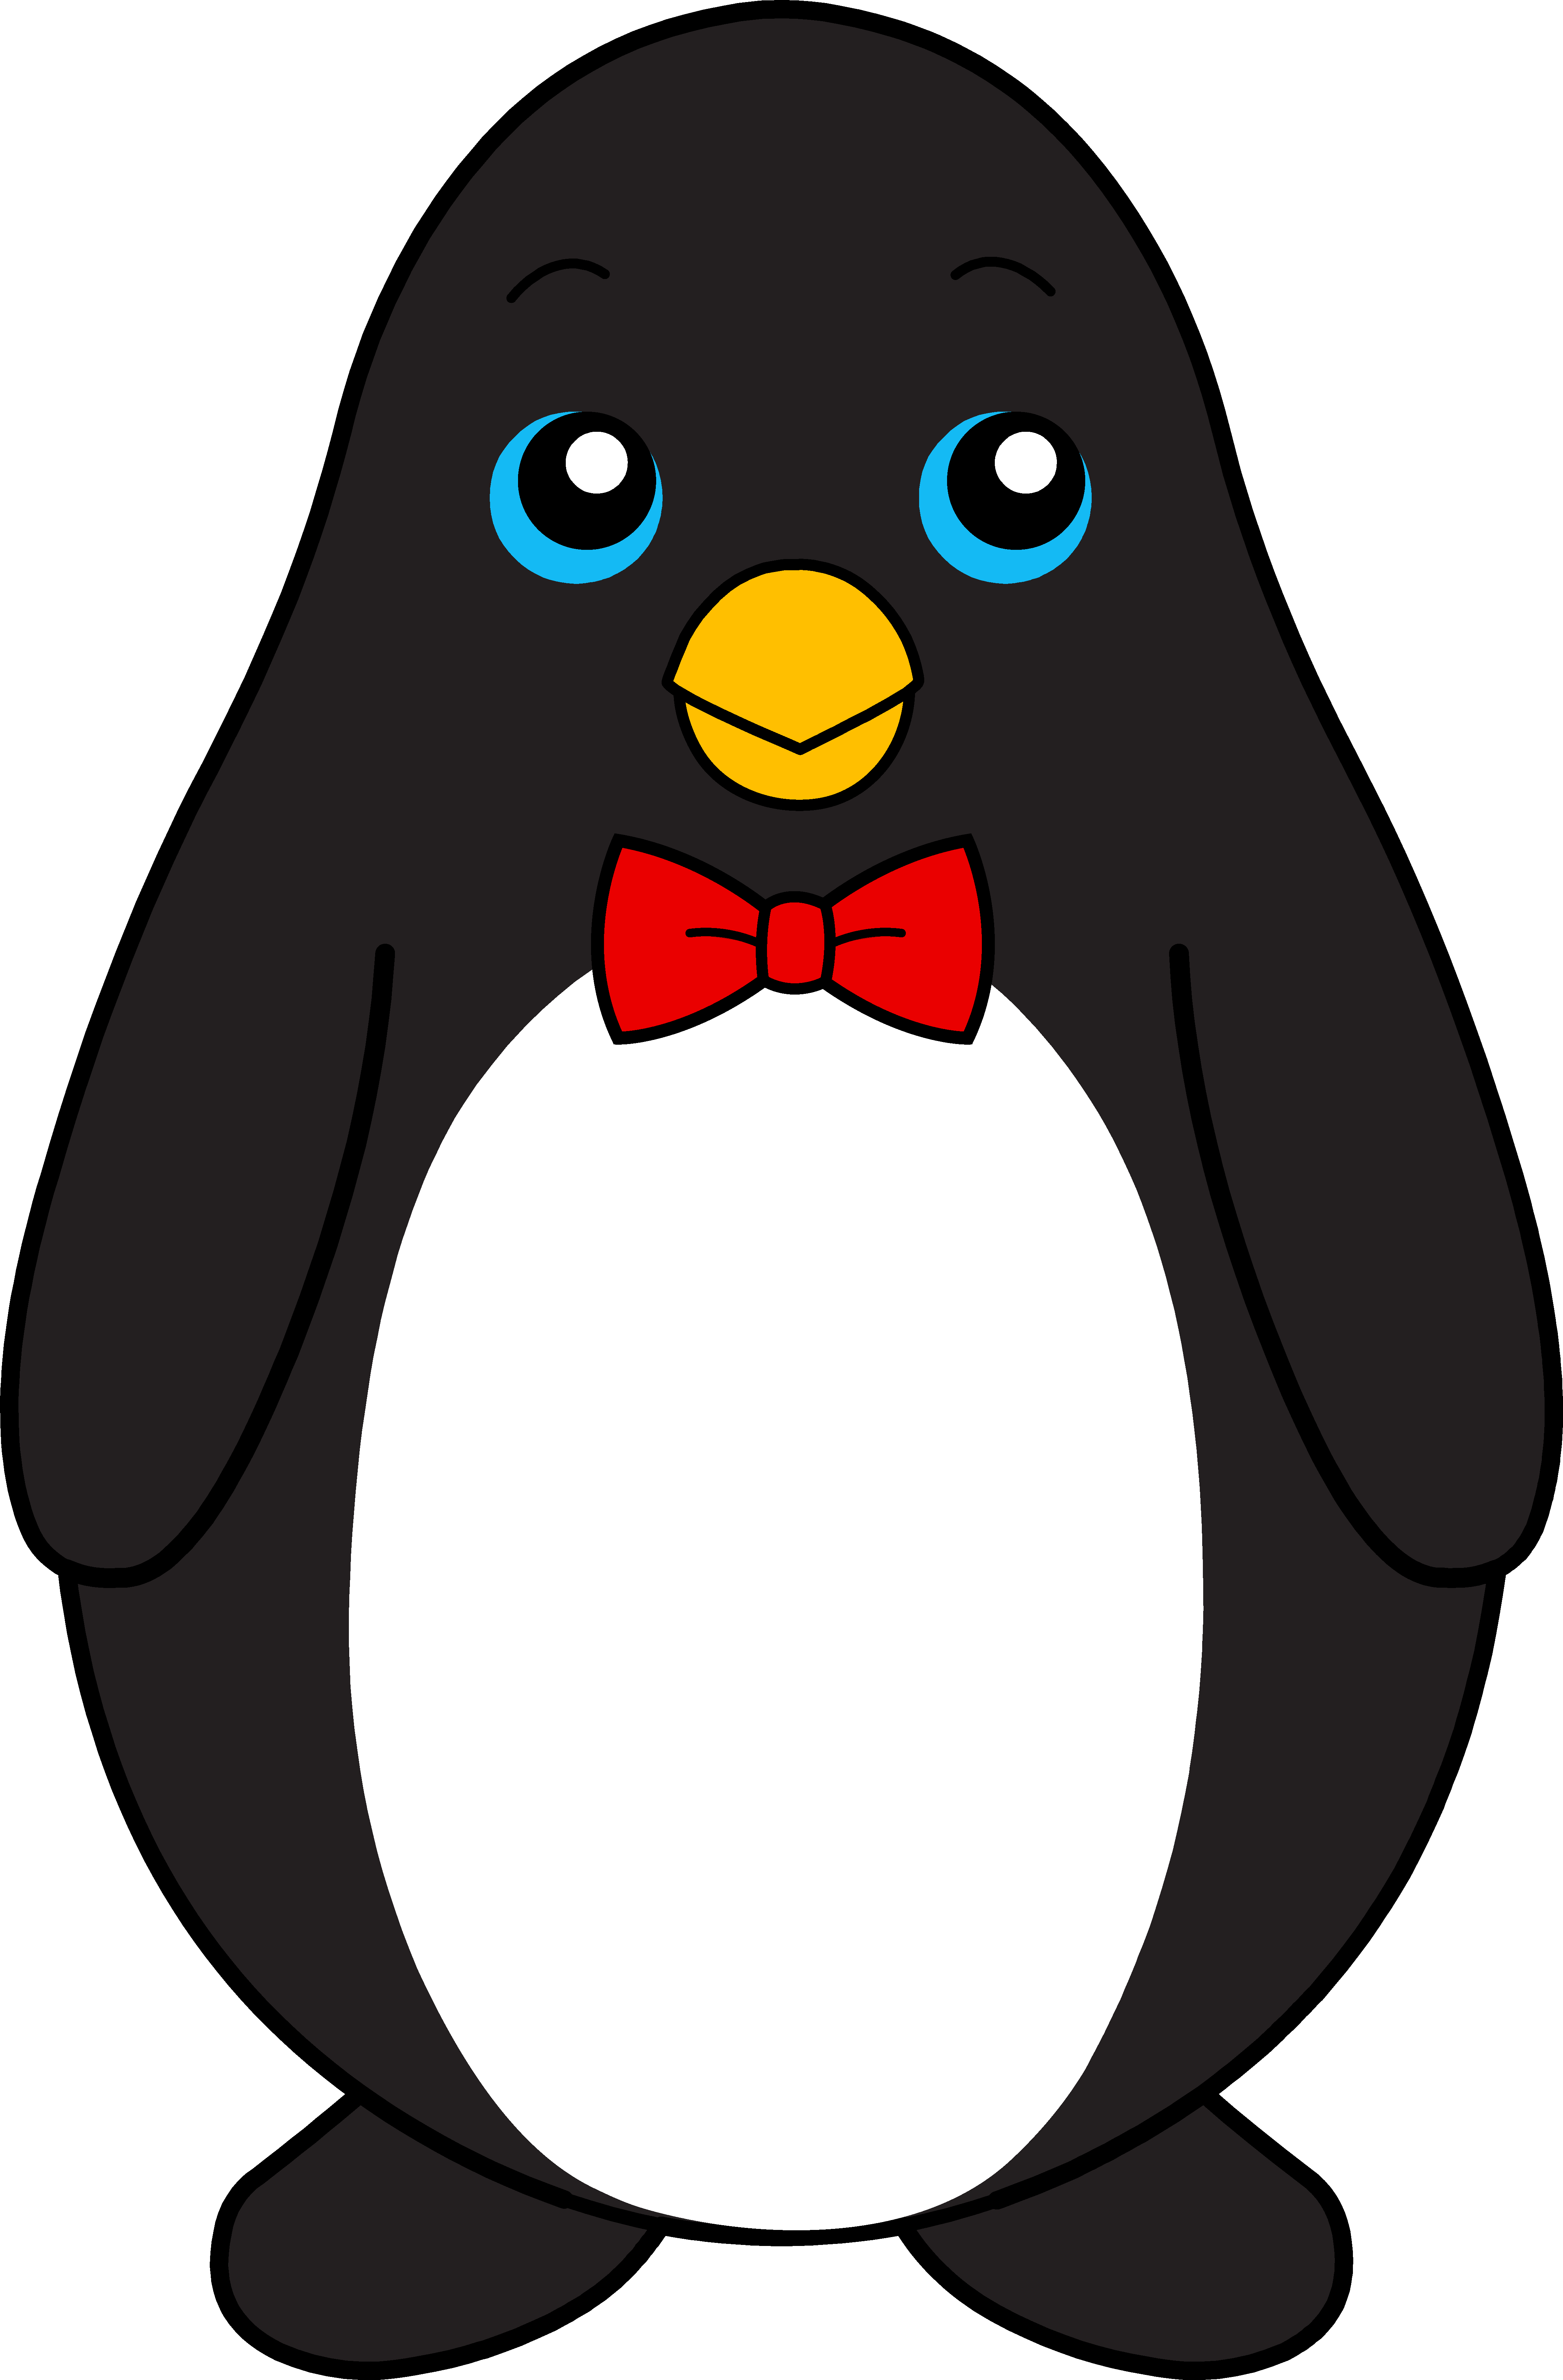 Free Cute Penguin Clipart, Download Free Clip Art, Free Clip.